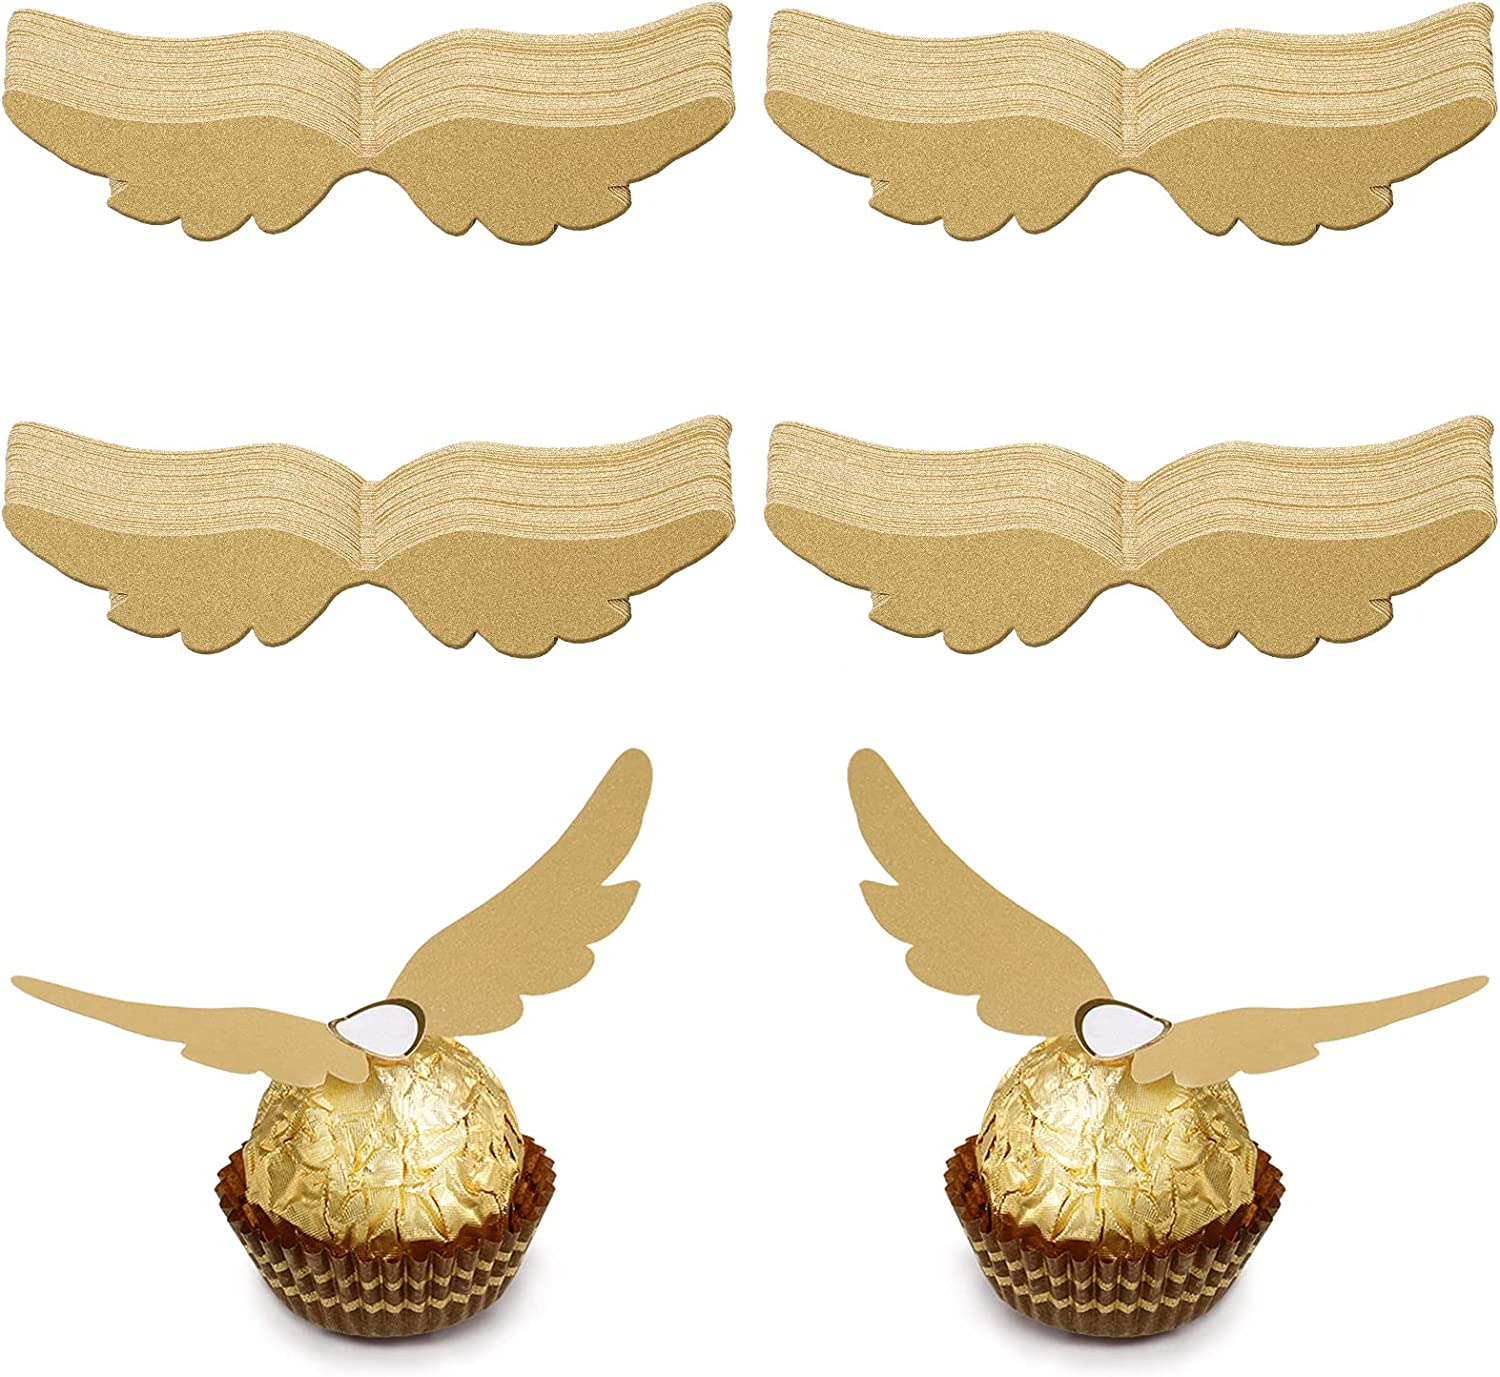 Zonon 48 Pieces Wizard Party Chocolate Decoration Gold Wings Decor for Birthday Wizard Fans Party Supplies